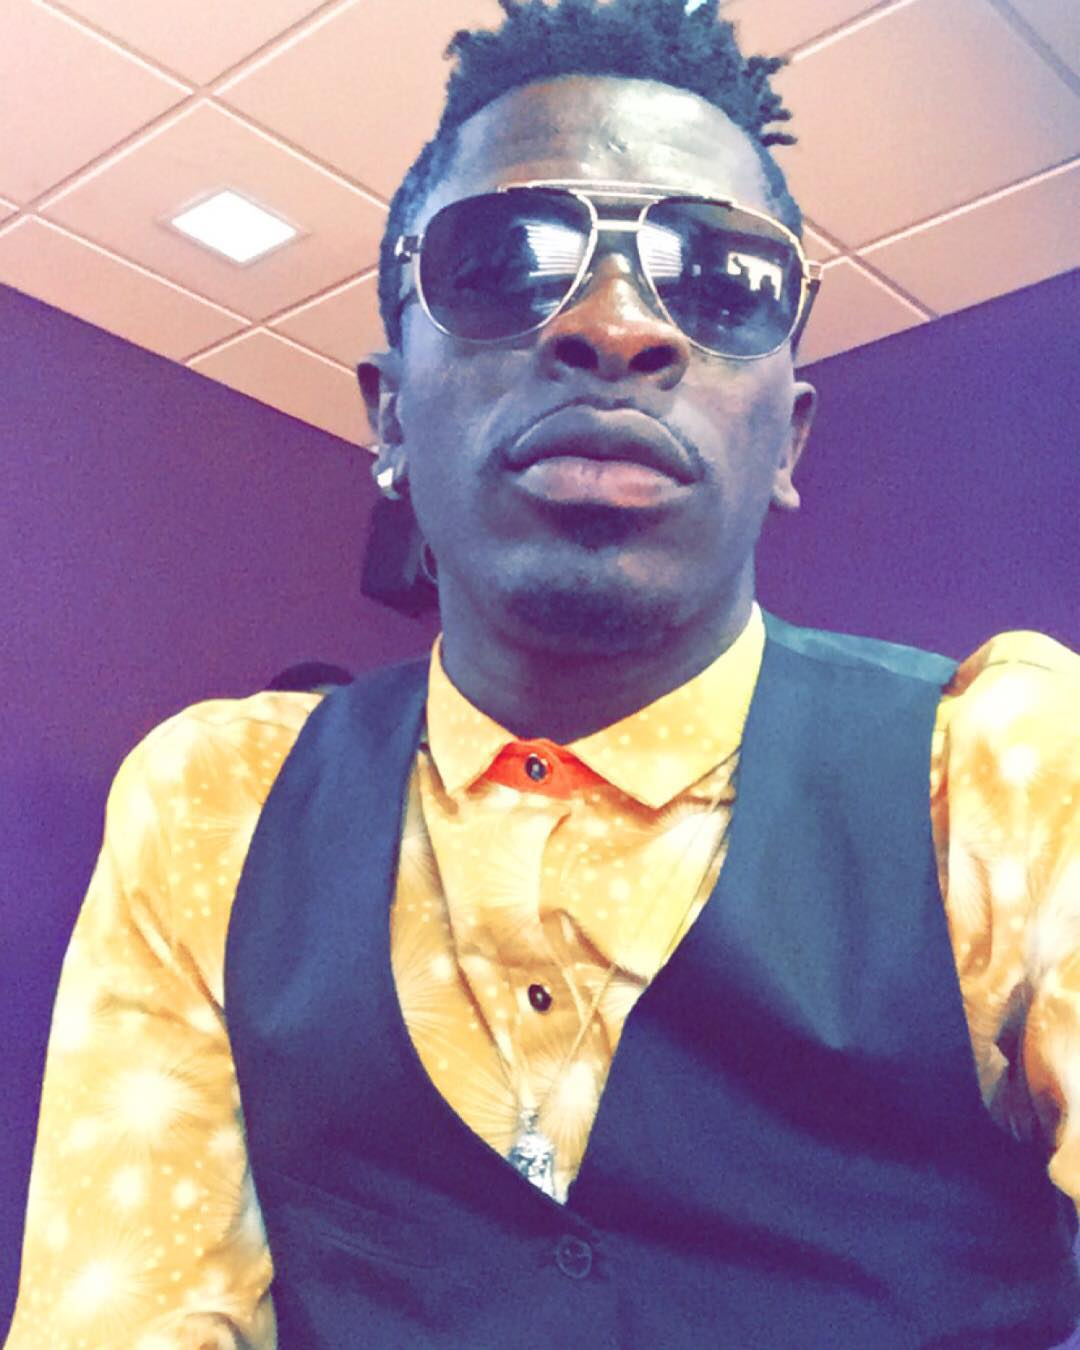 Ek Tare Wale Baba New Song Download: Shatta Wale